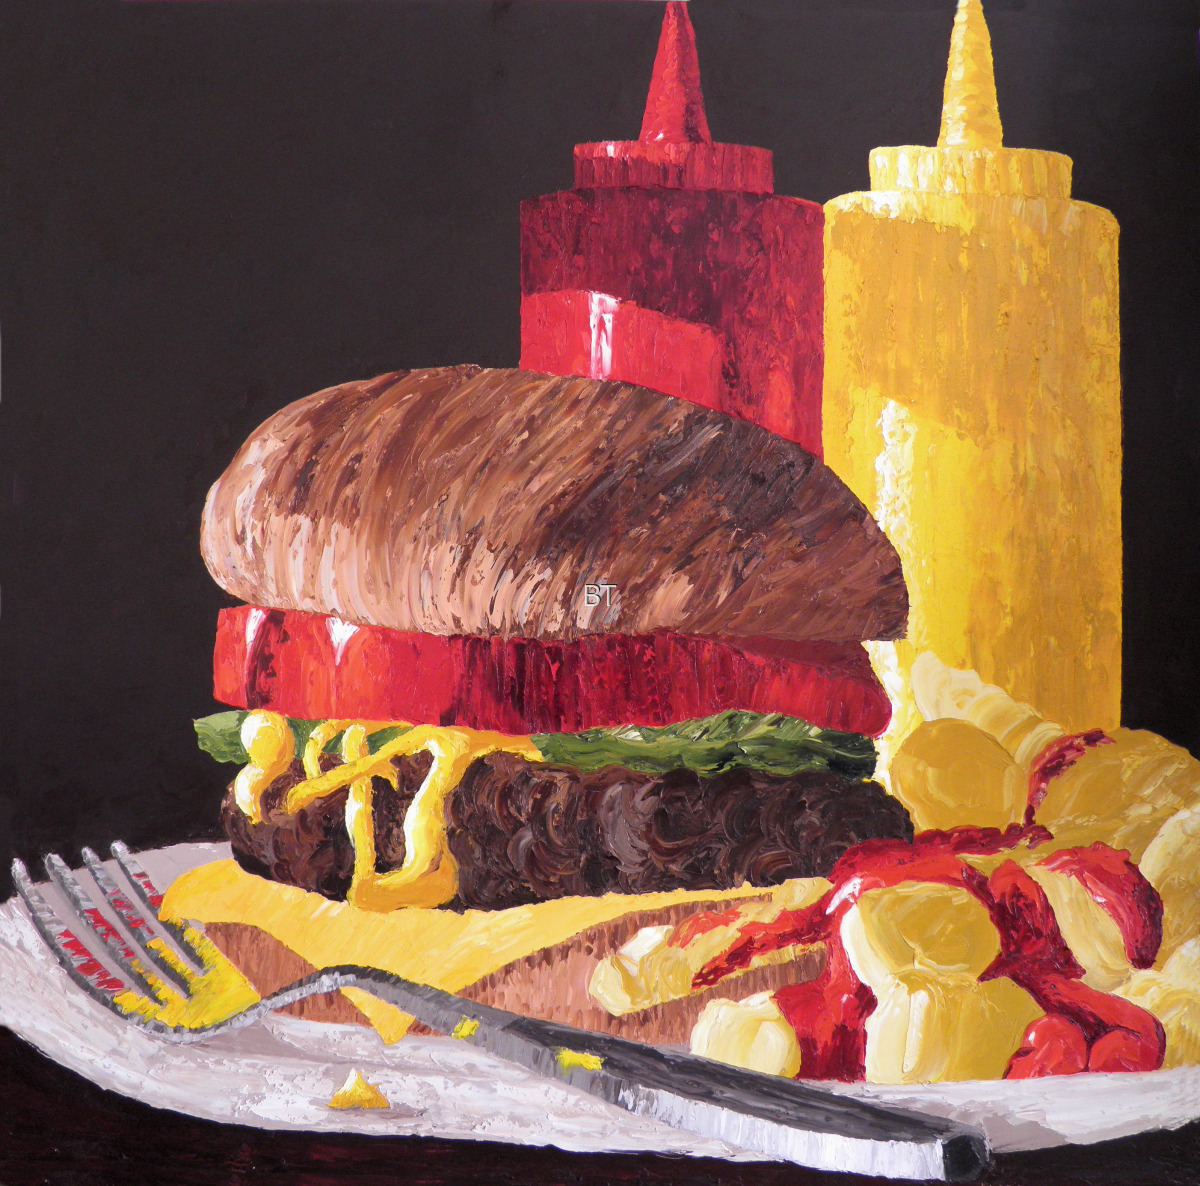 oil on canvas of burger and fries with ketchup and mustard bottles (large view)